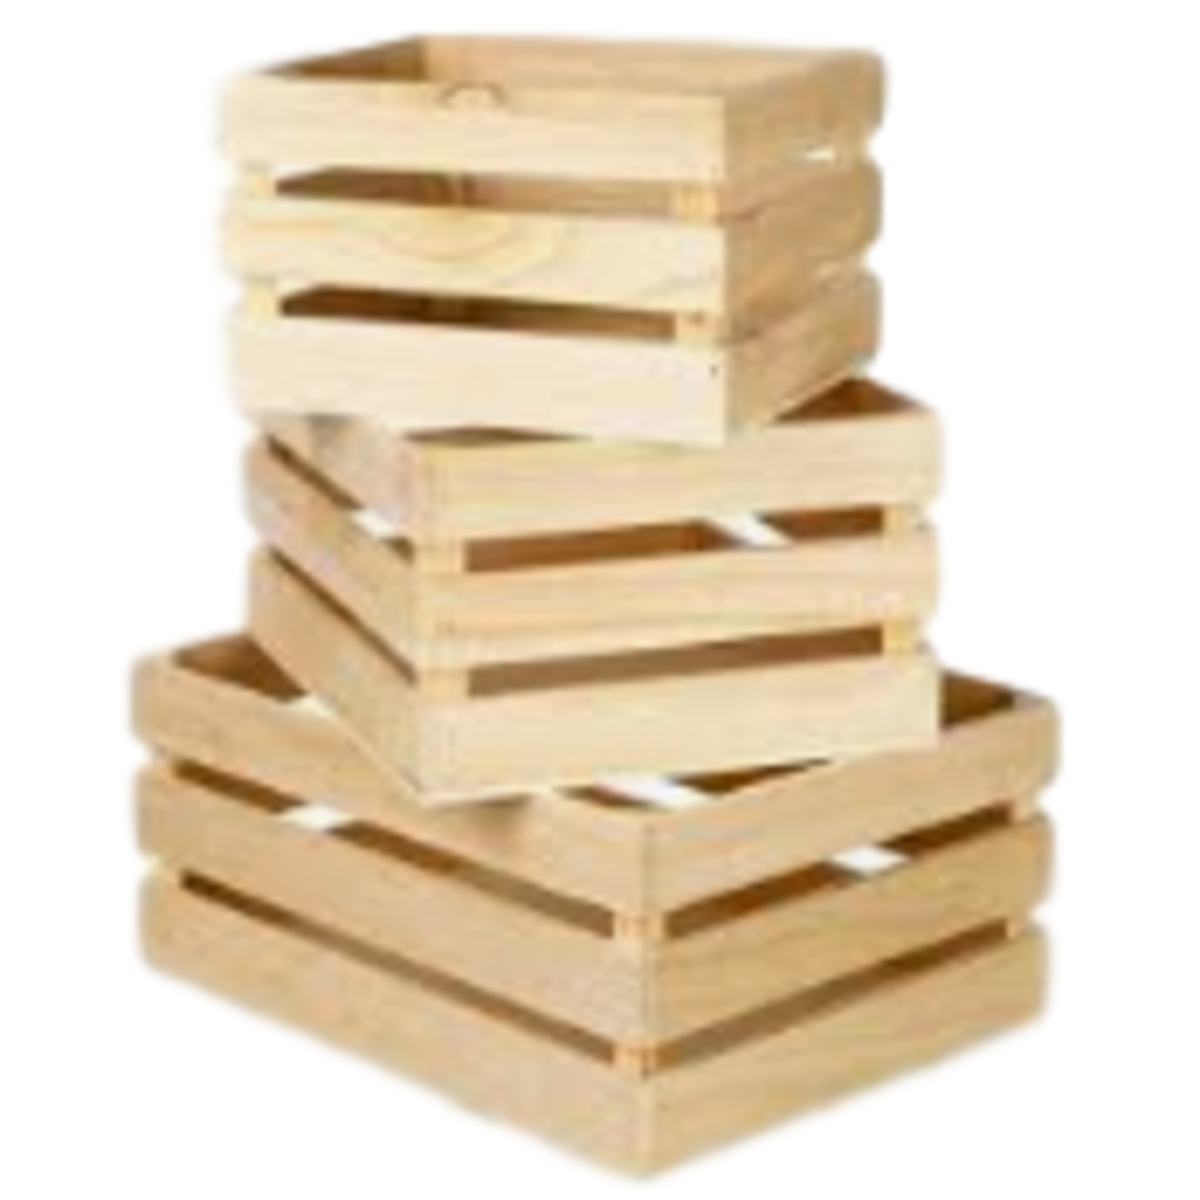 Rectangle Wooden Crate Small 43cml X 30cmw X 21cmh Natural